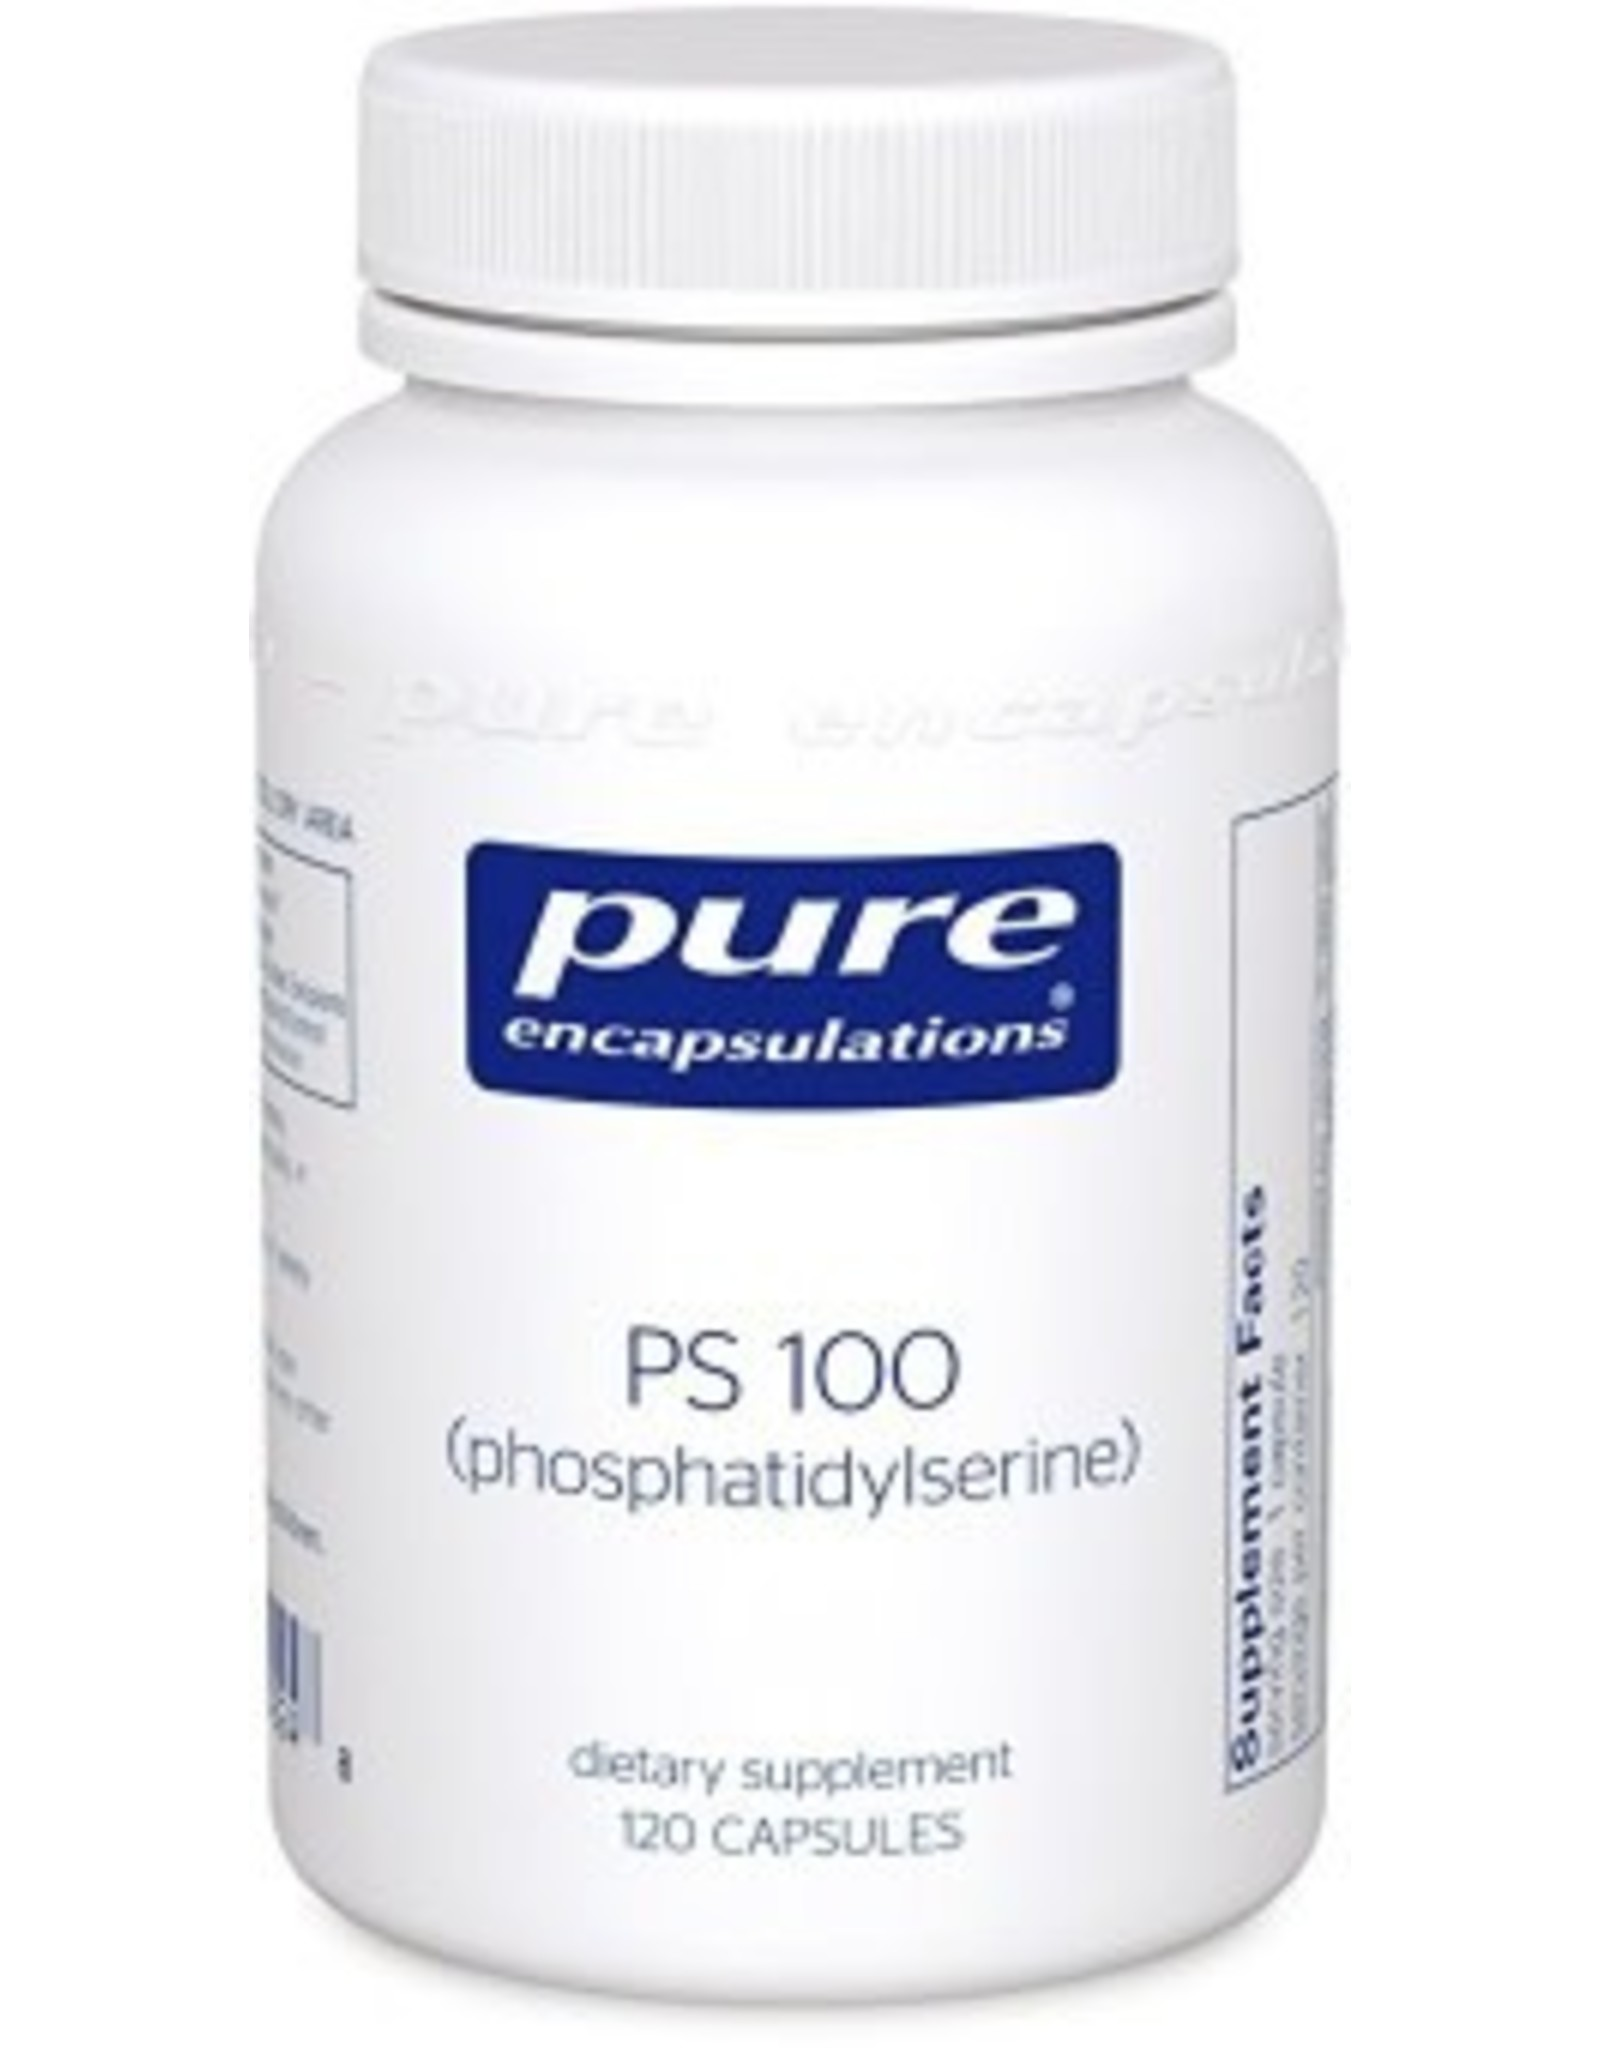 PS 100 60 ct